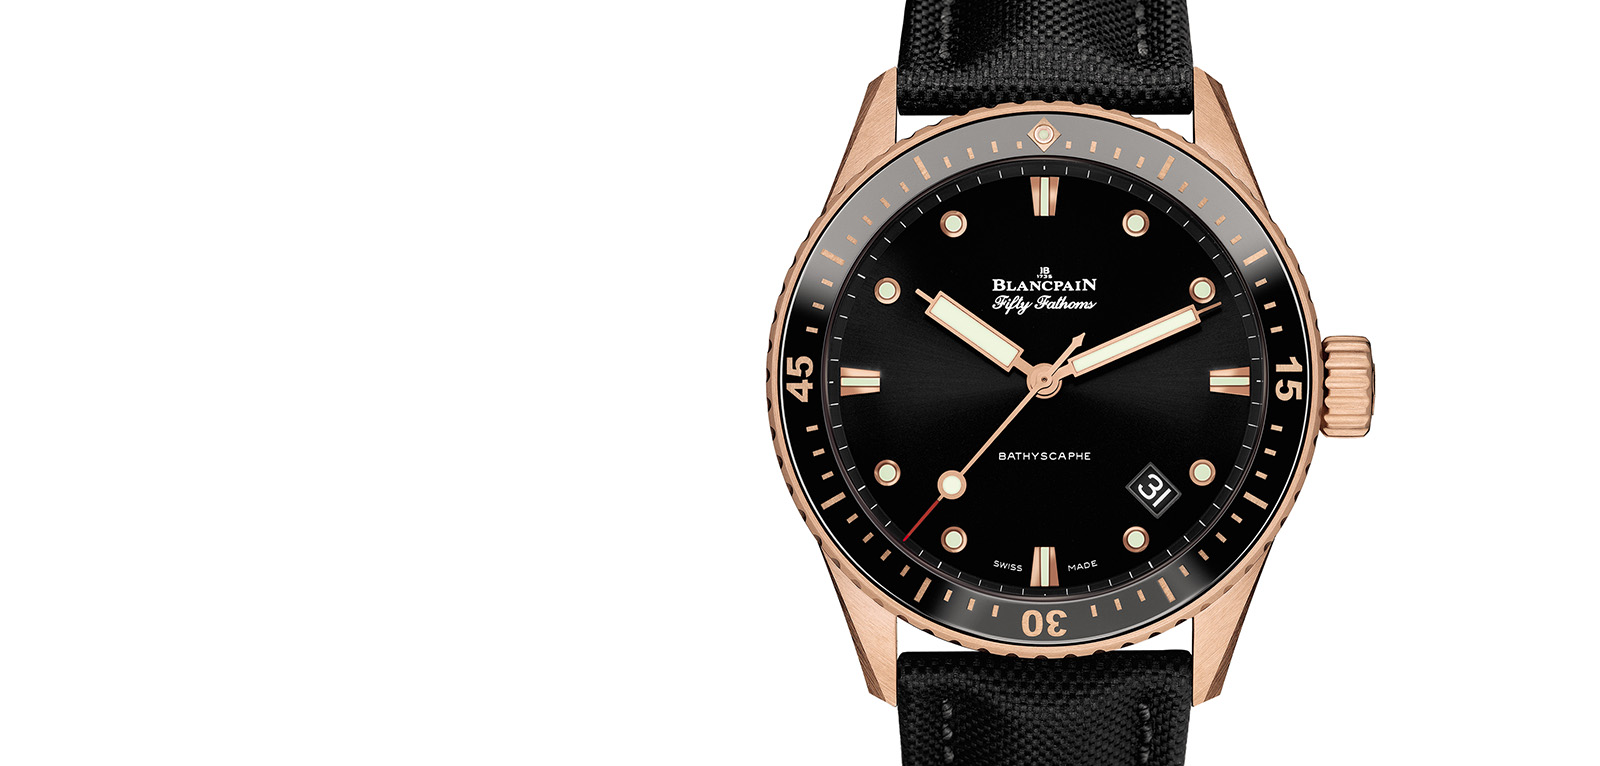 Blancpain Fifty Fathoms Bathyscaphe Sedna Gold portada